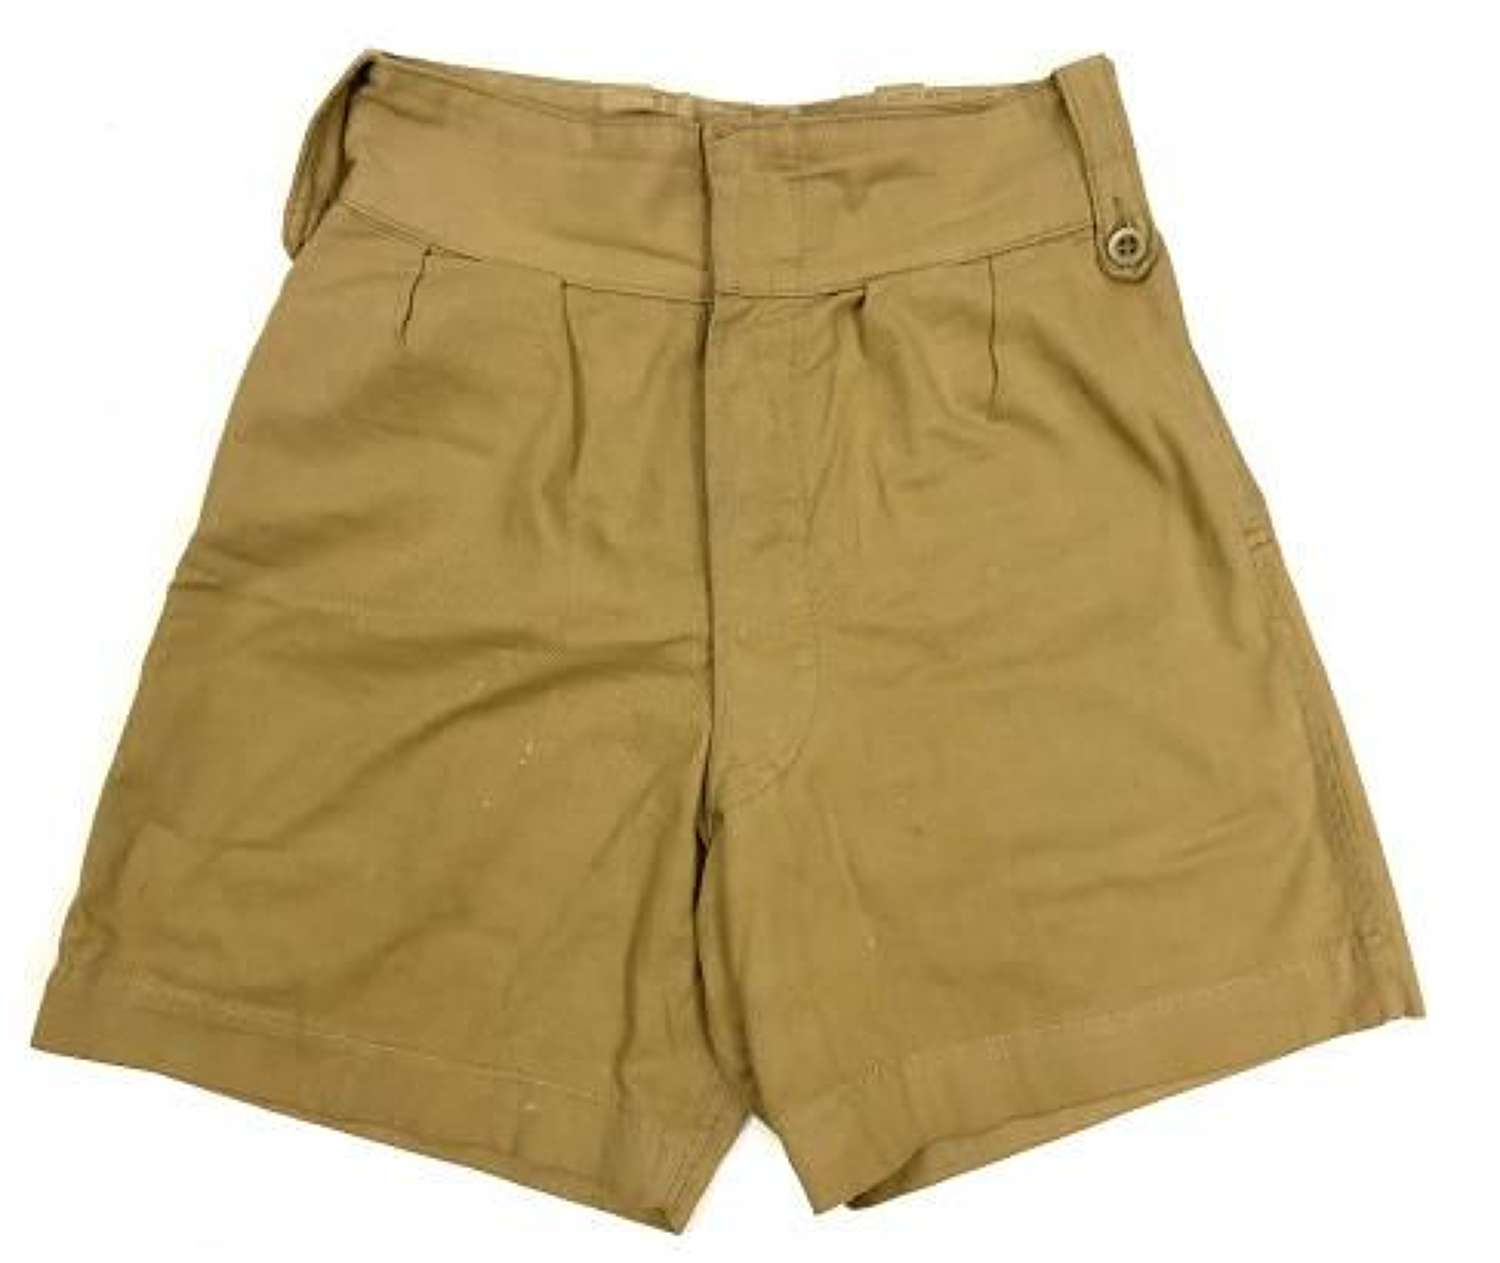 Original 1950s British Made Khaki Drill Shorts